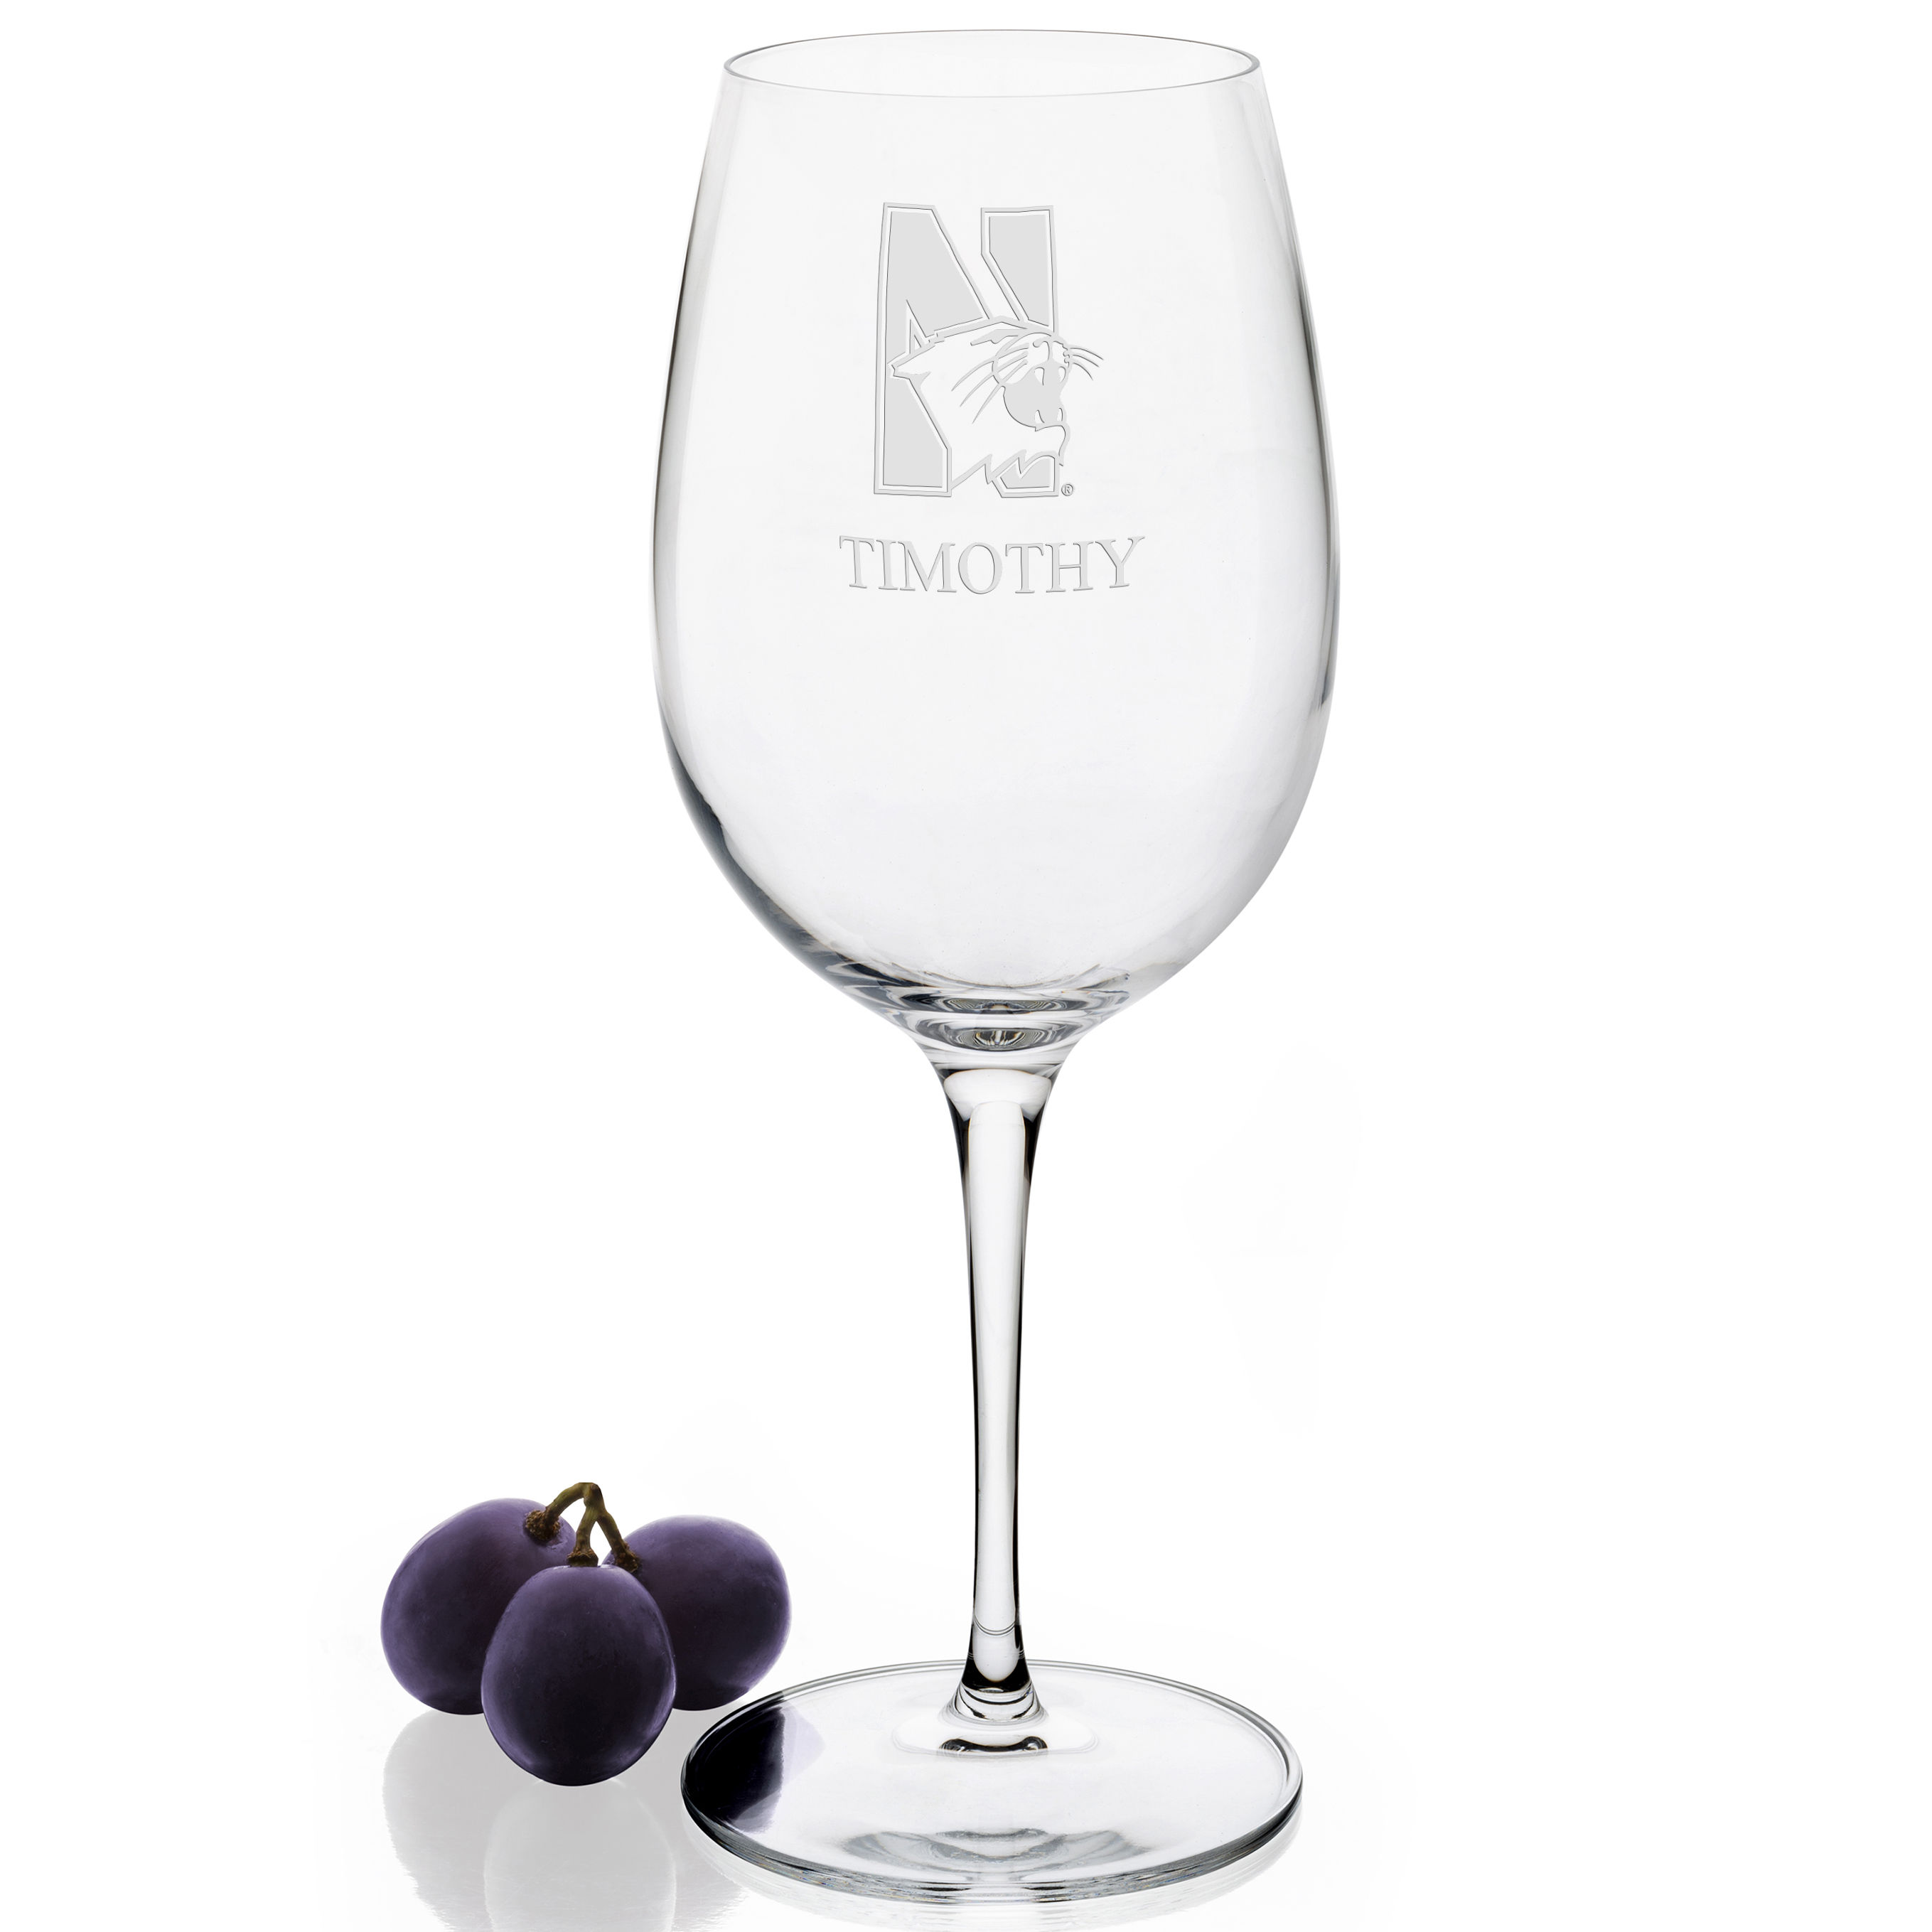 Northwestern University Red Wine Glasses - Set of 2 - Image 2